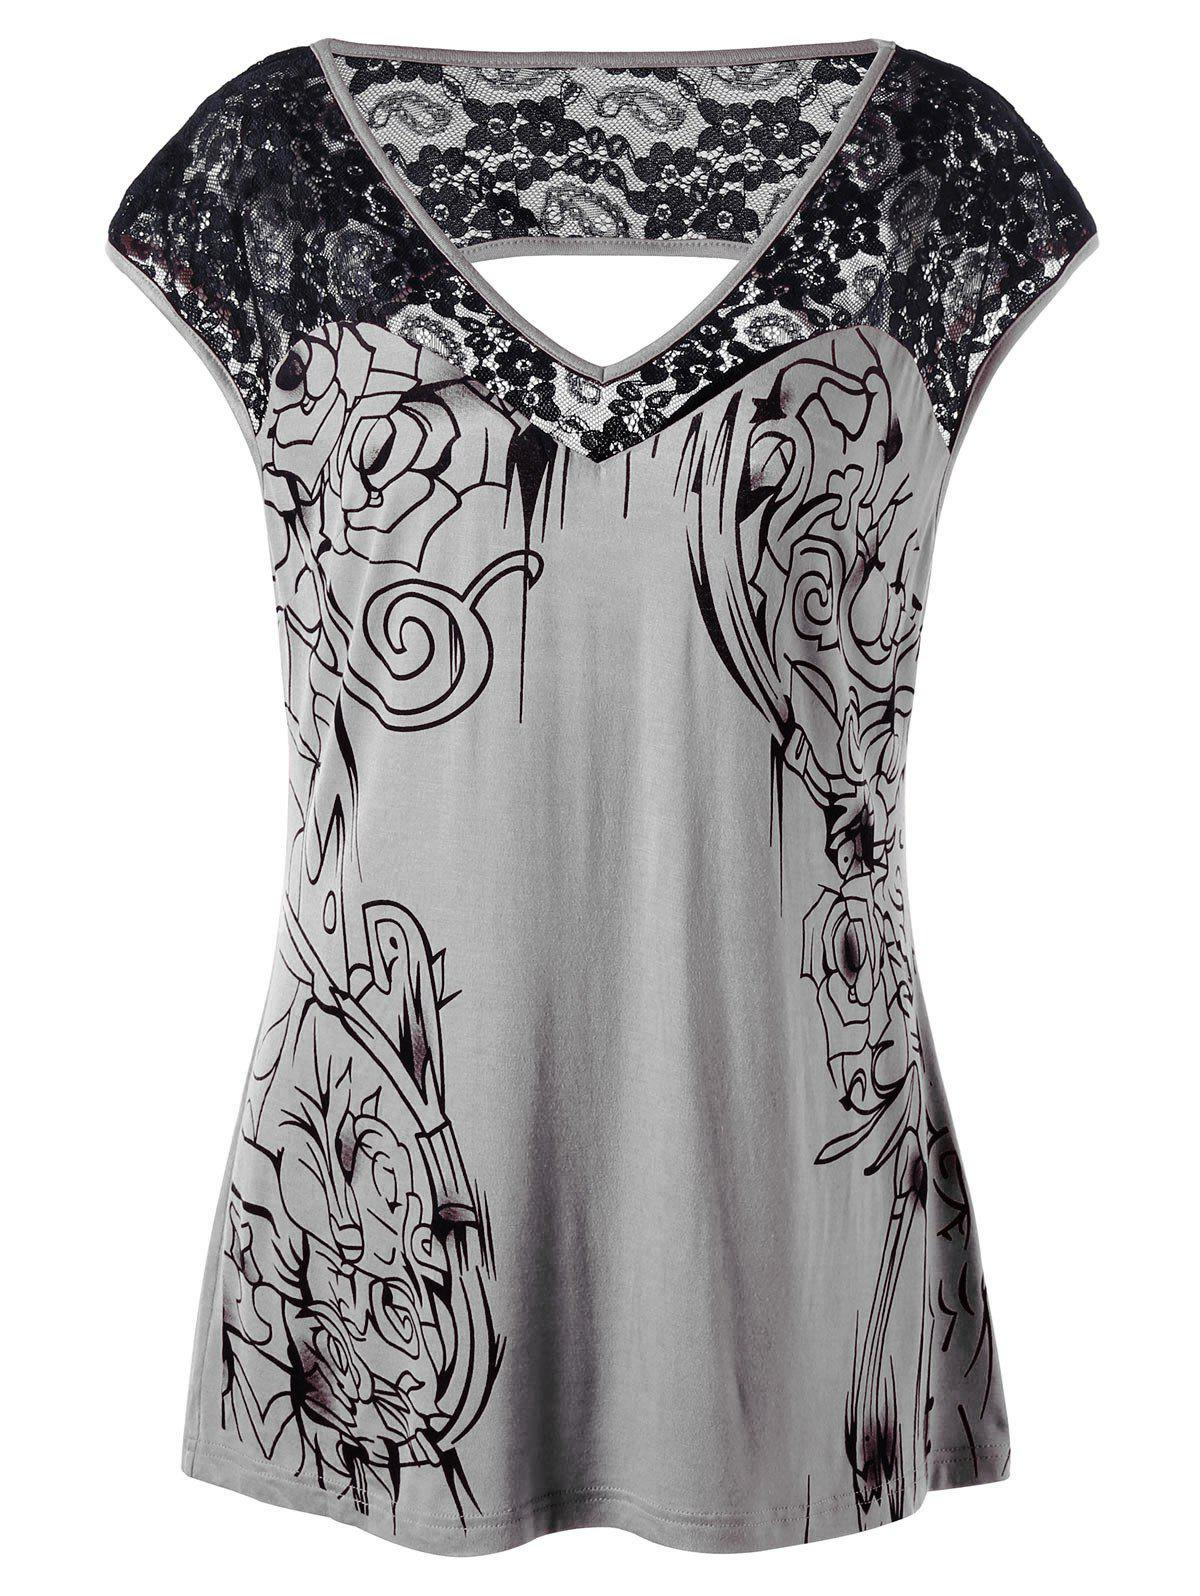 Plus Size Lace Insert Open Back T-shirt black sequins embellished open back lace up top